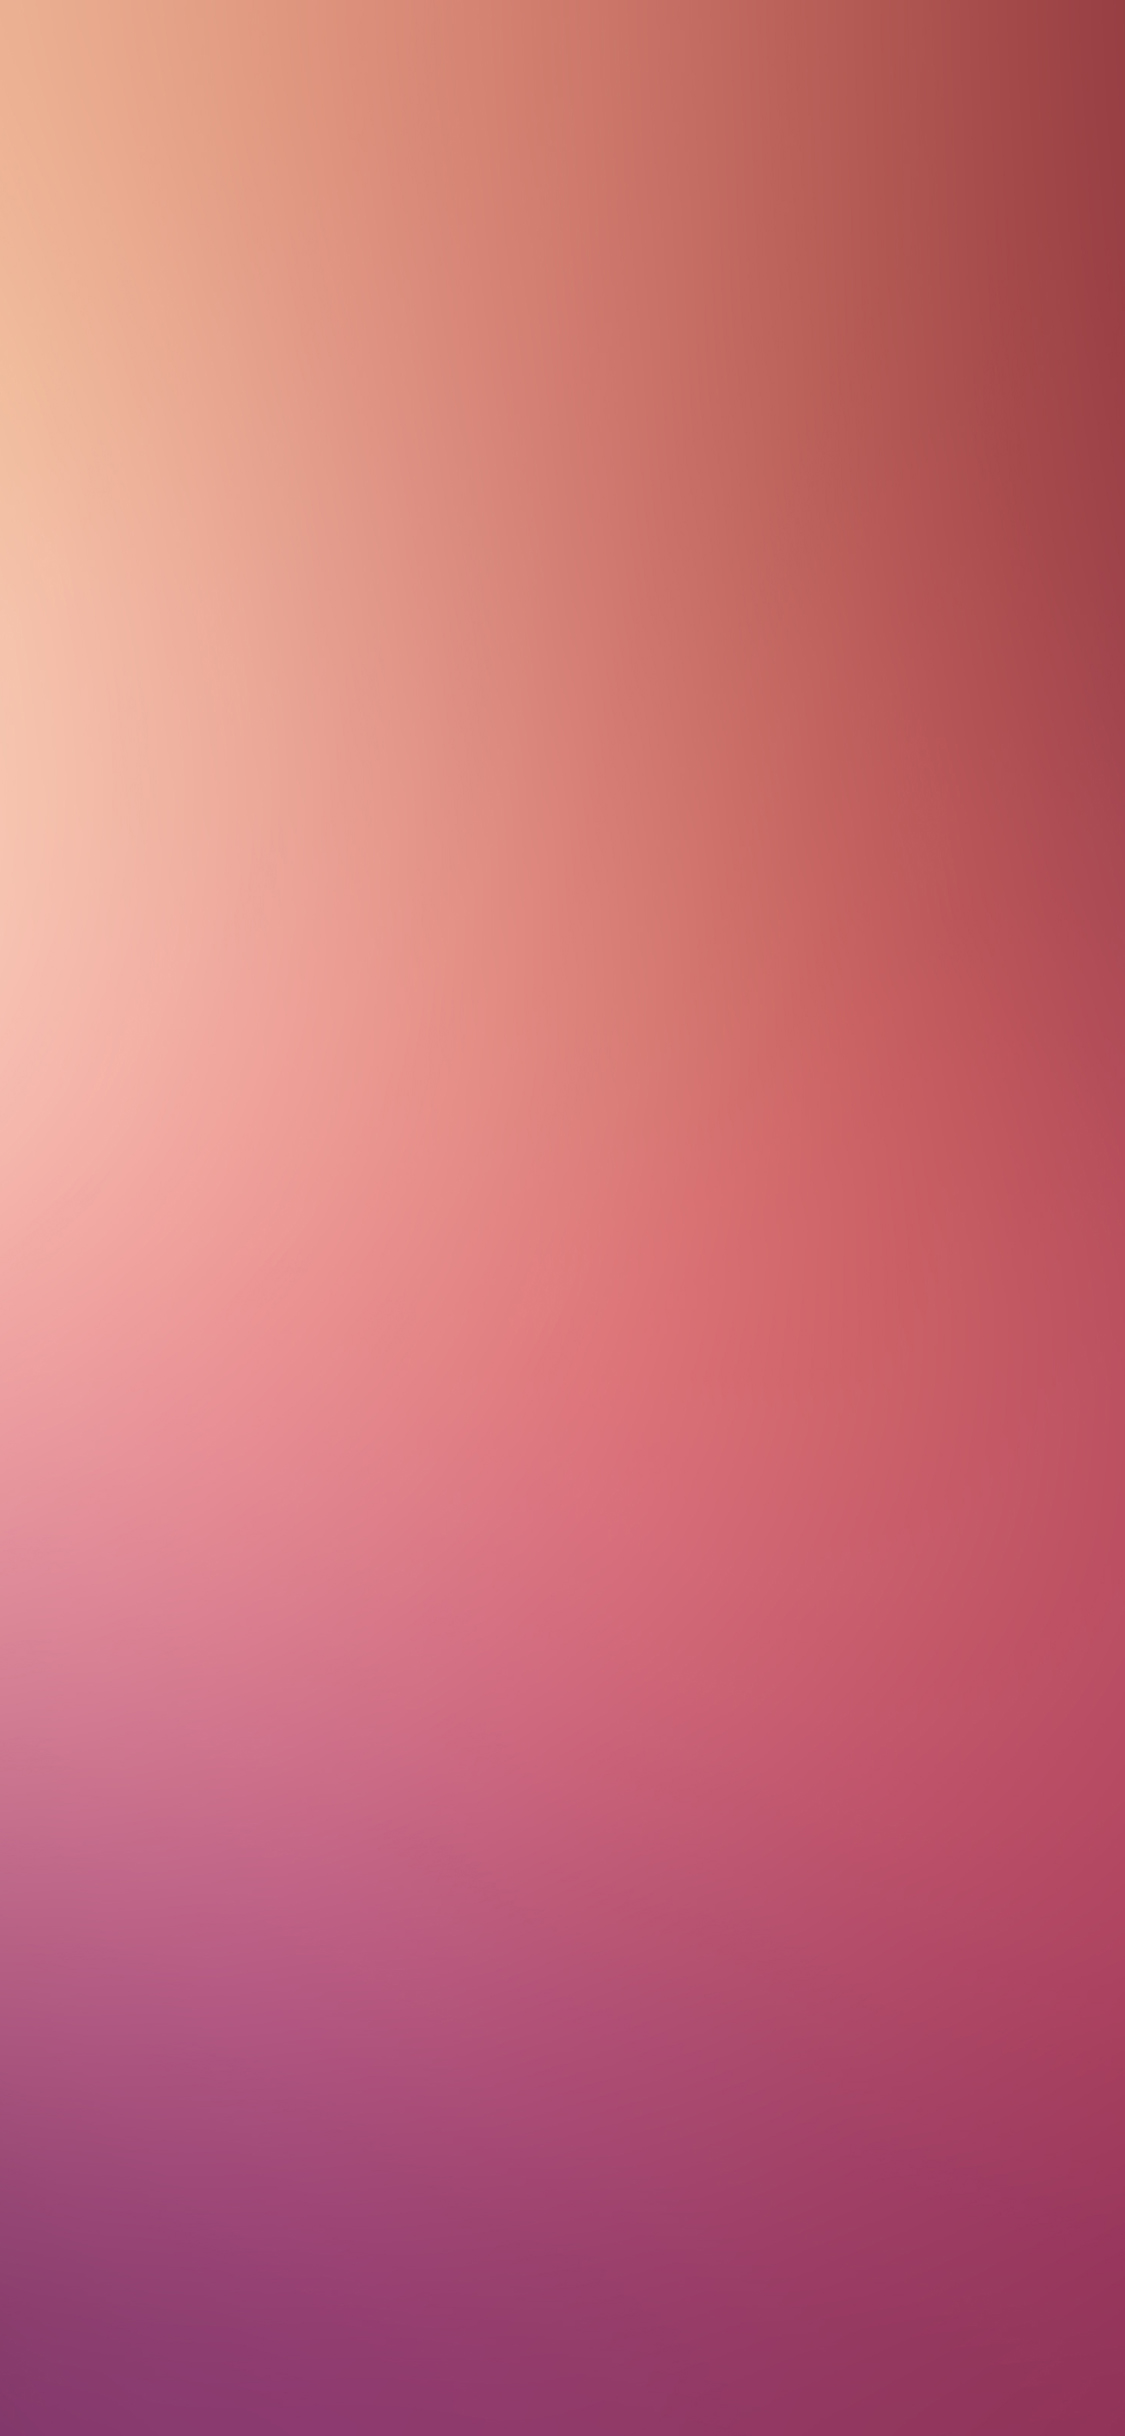 iPhoneXpapers.com-Apple-iPhone-wallpaper-sd56-panini-7-to-9-gradation-blur